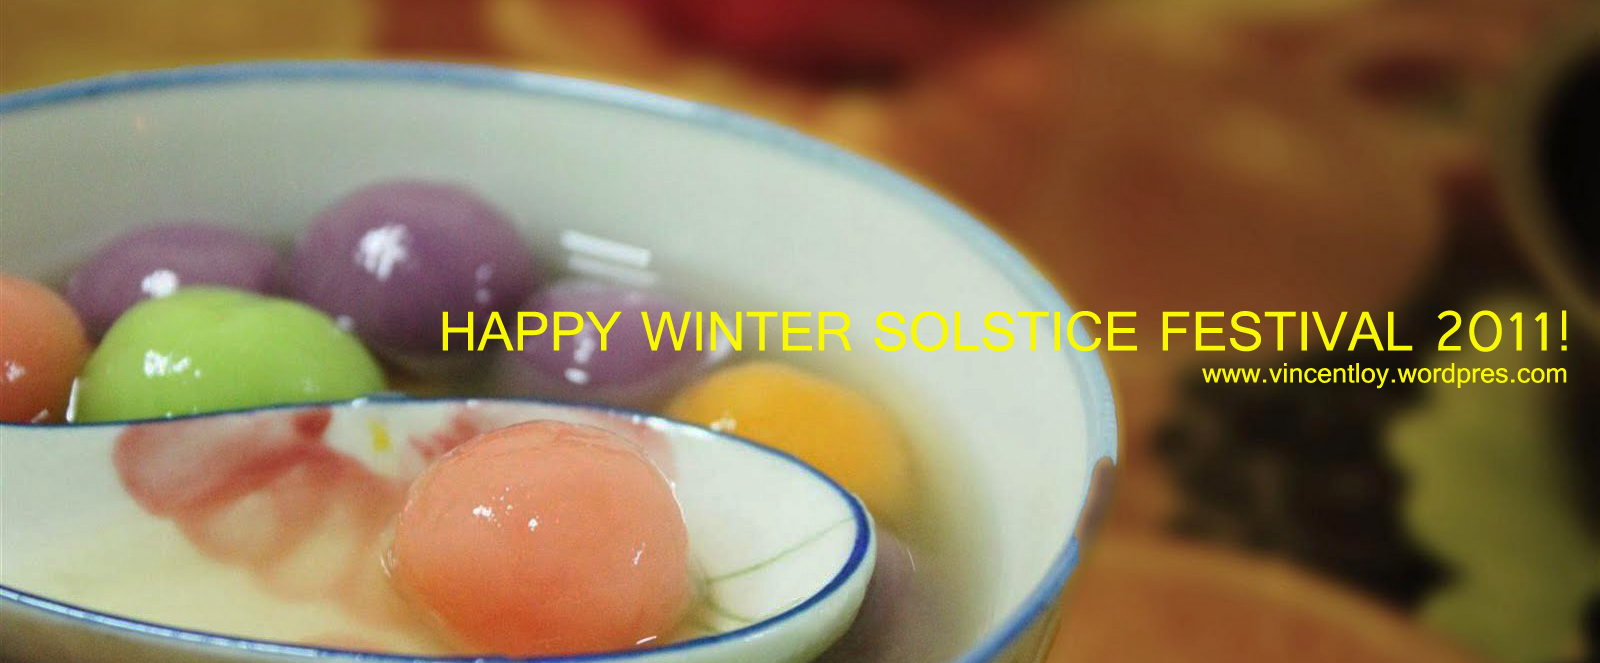 Happy winter solstice festival vincent loys online journal advertisements m4hsunfo